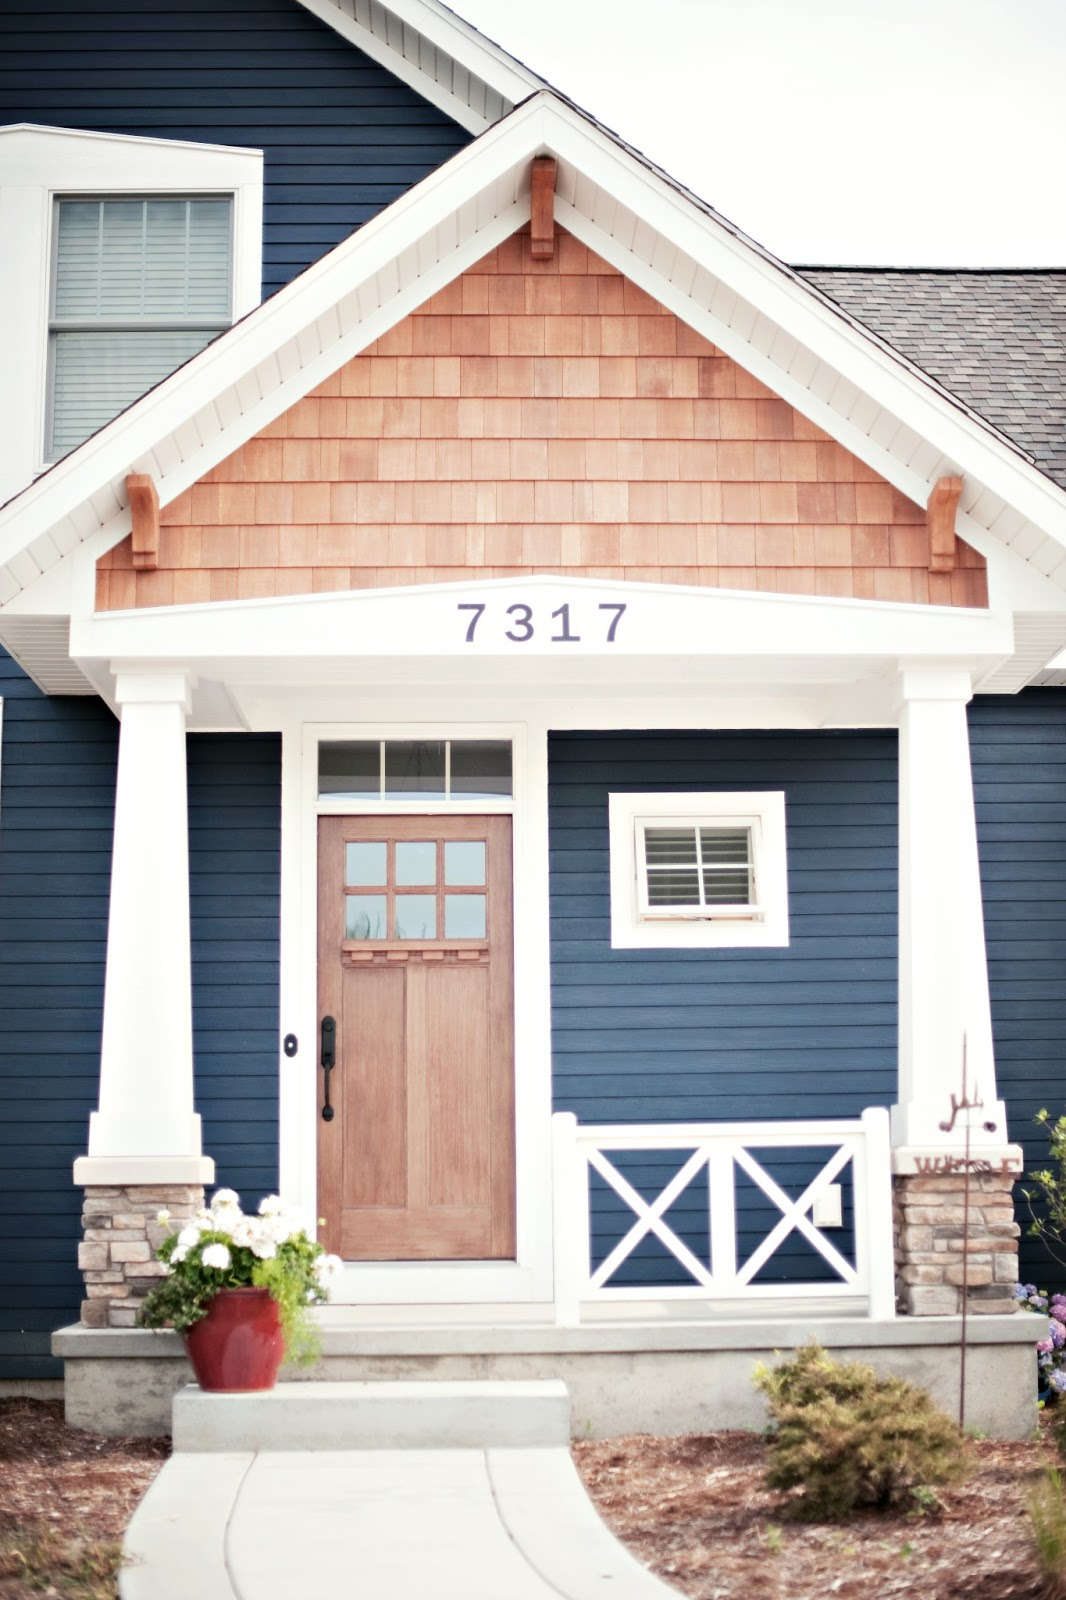 Lisa mende design best navy blue paint colors 8 of my favs for Exterior home paint colors